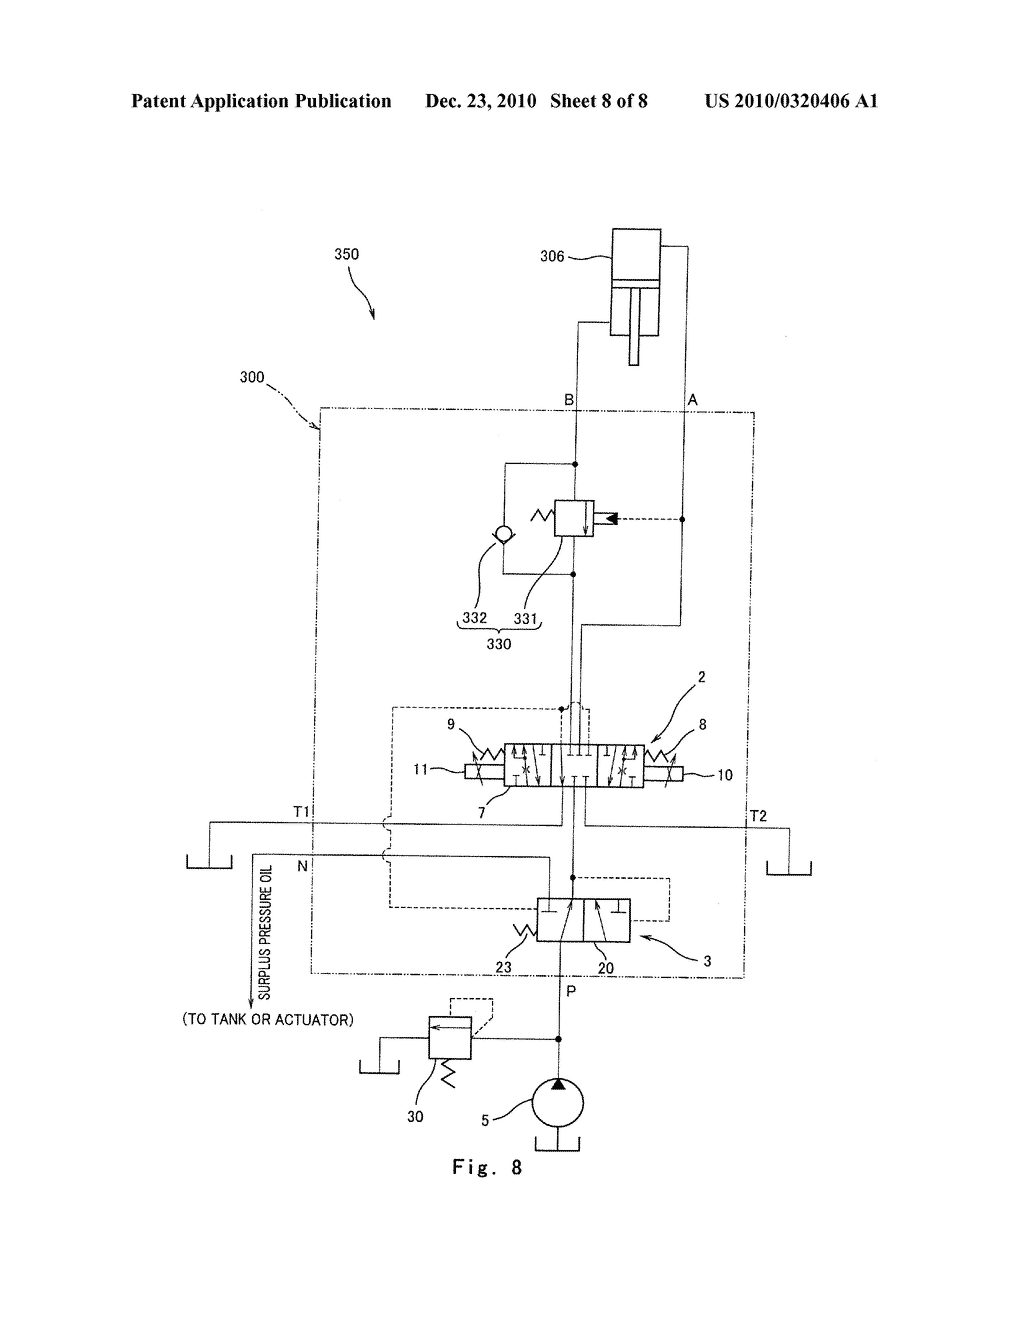 Pilot Control Wiring Diagram Jcb together with Sequence Valve And Pressure Reducing together with ZGlyZWN0aW9uYWwtY29udHJvbC12YWx2ZS1zY2hlbWF0aWM besides Chapter 14 Sequence Valves And Reducing Valves in addition Pd Mp Ctlvalve Axial Pilot Operated Danflo. on hydraulic pilot operated relief valve